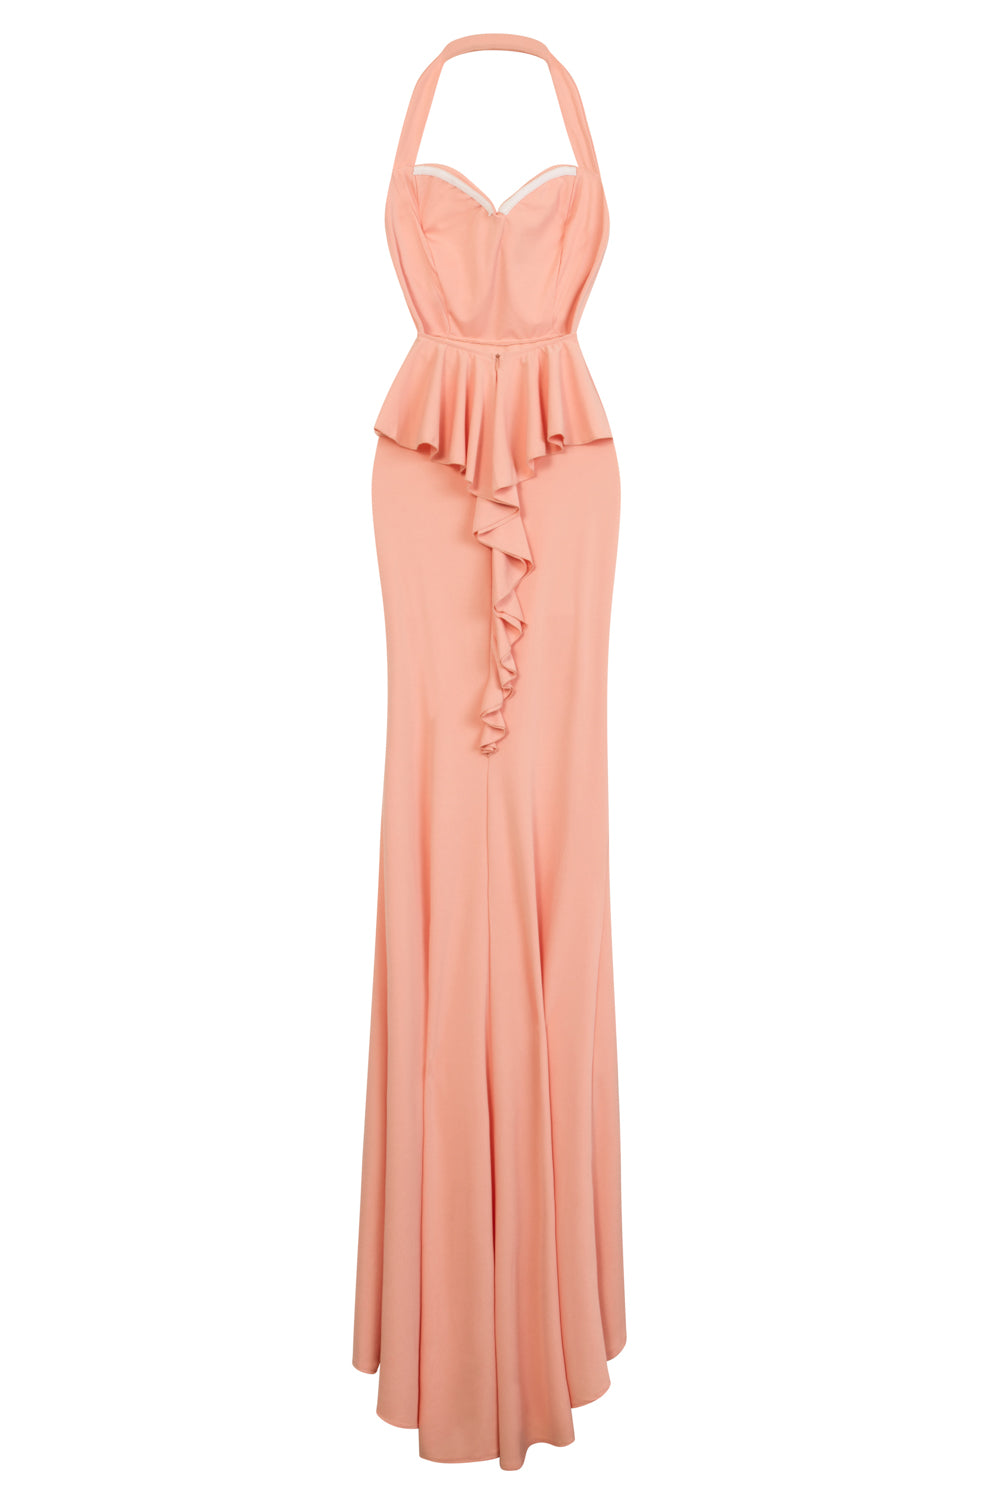 Dream Coral Sweetheart Backless Waterfall Frill Ruffle Fishtail Maxi Dress